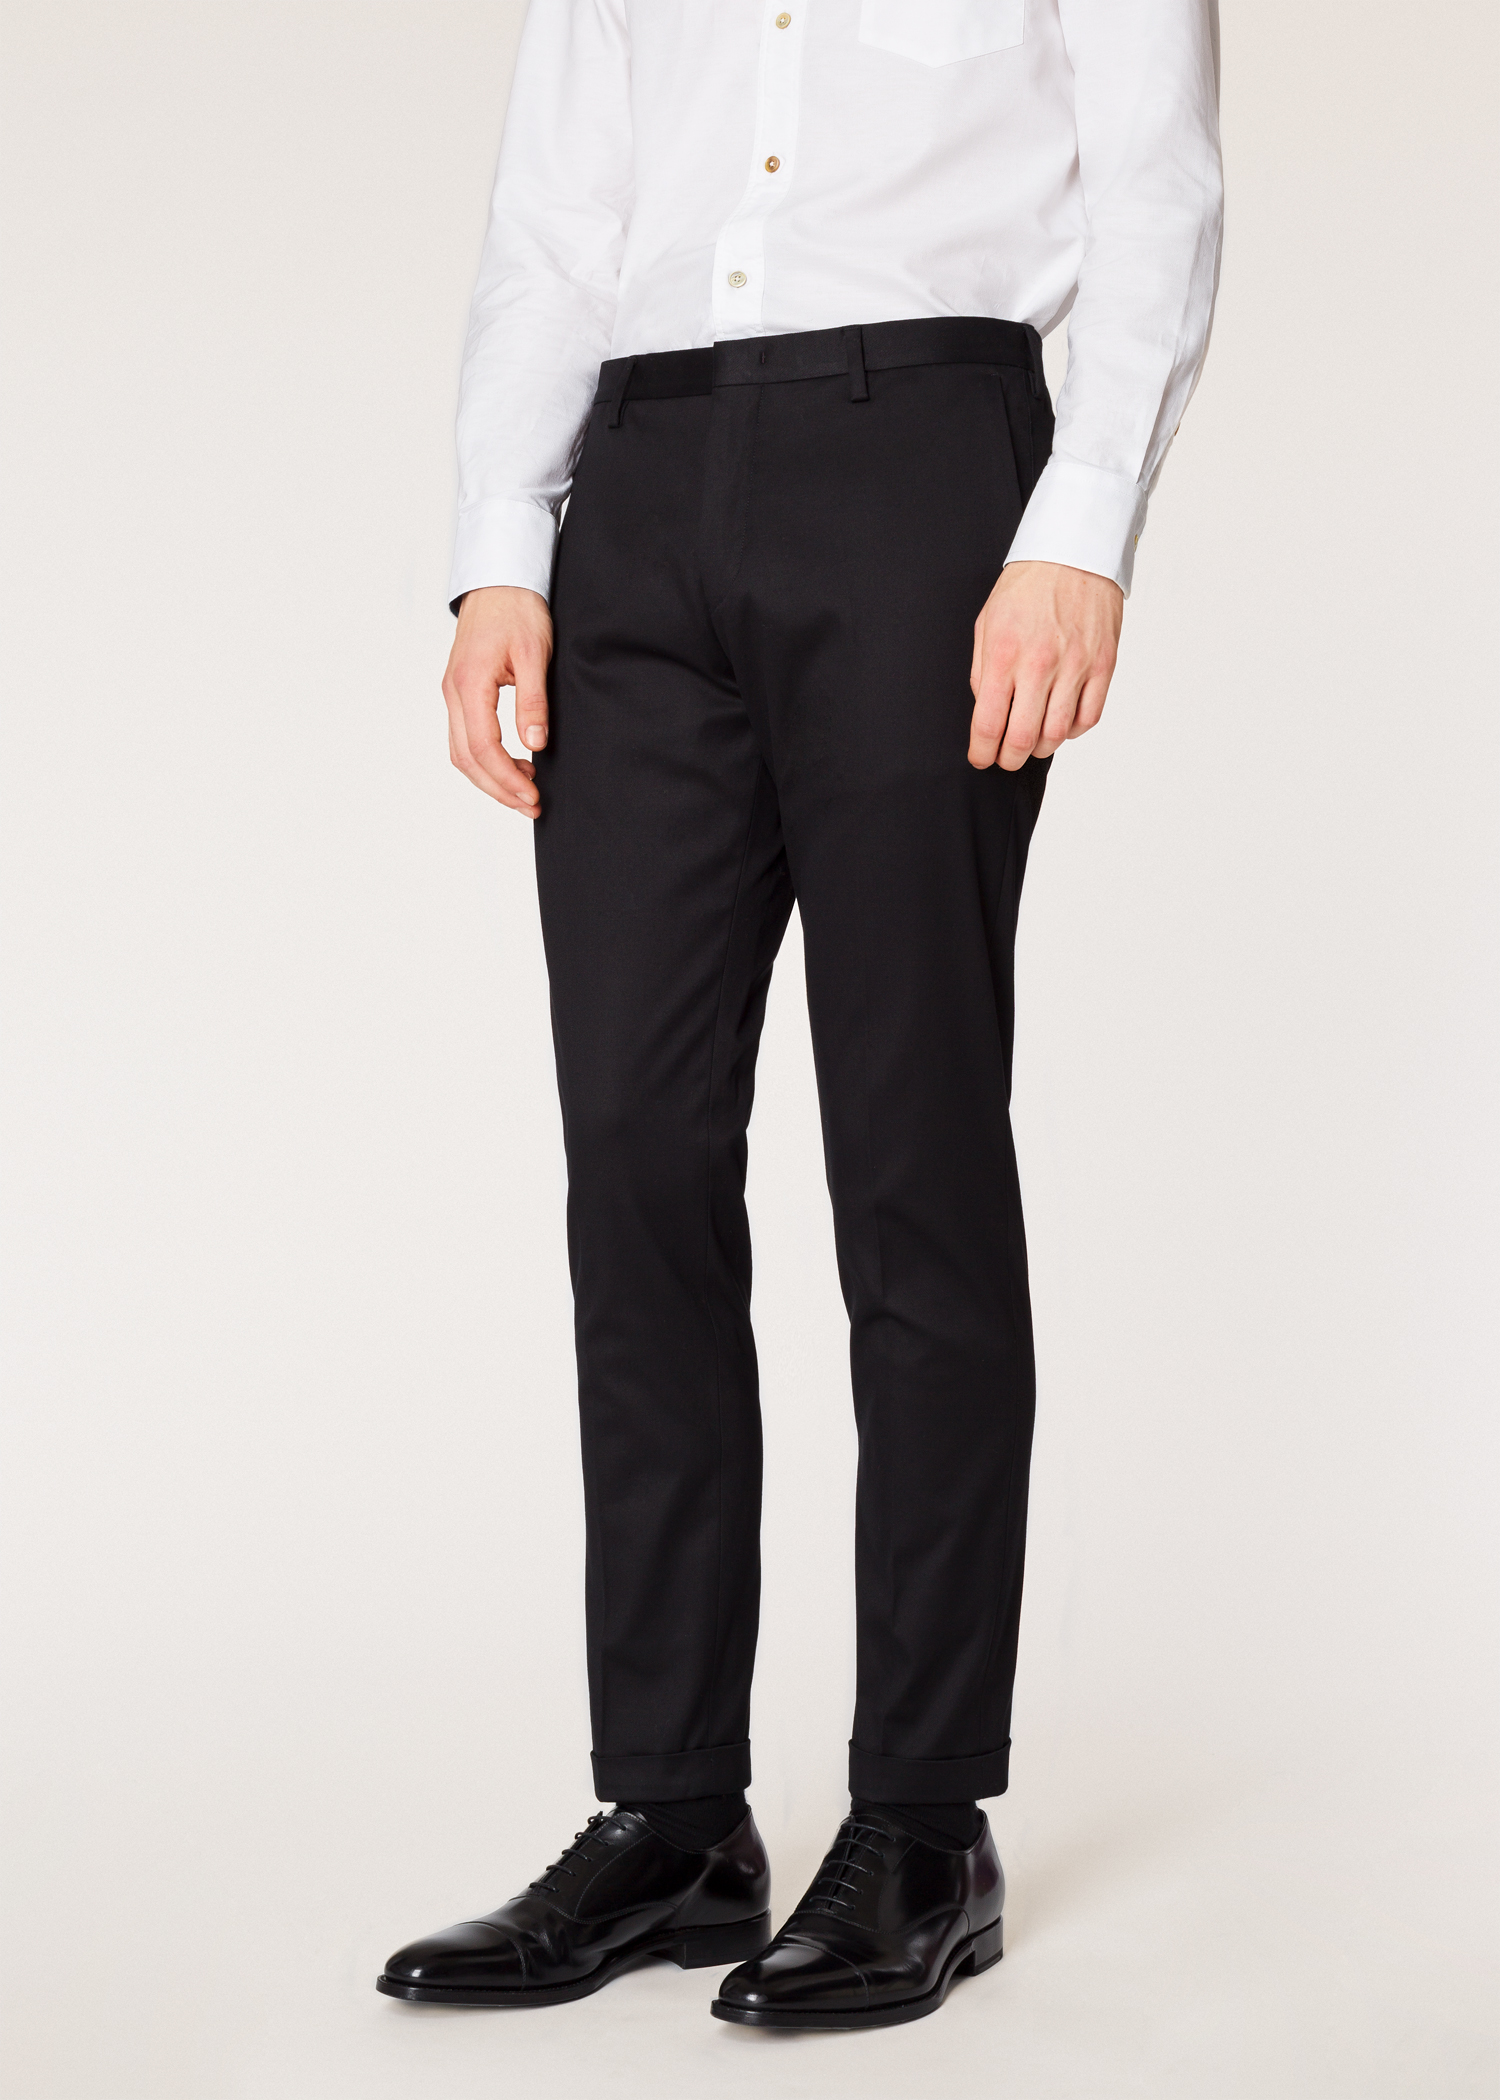 ff331be5 Model front close up - Men's Slim-Fit Black Stretch-Cotton Trousers Paul  Smith